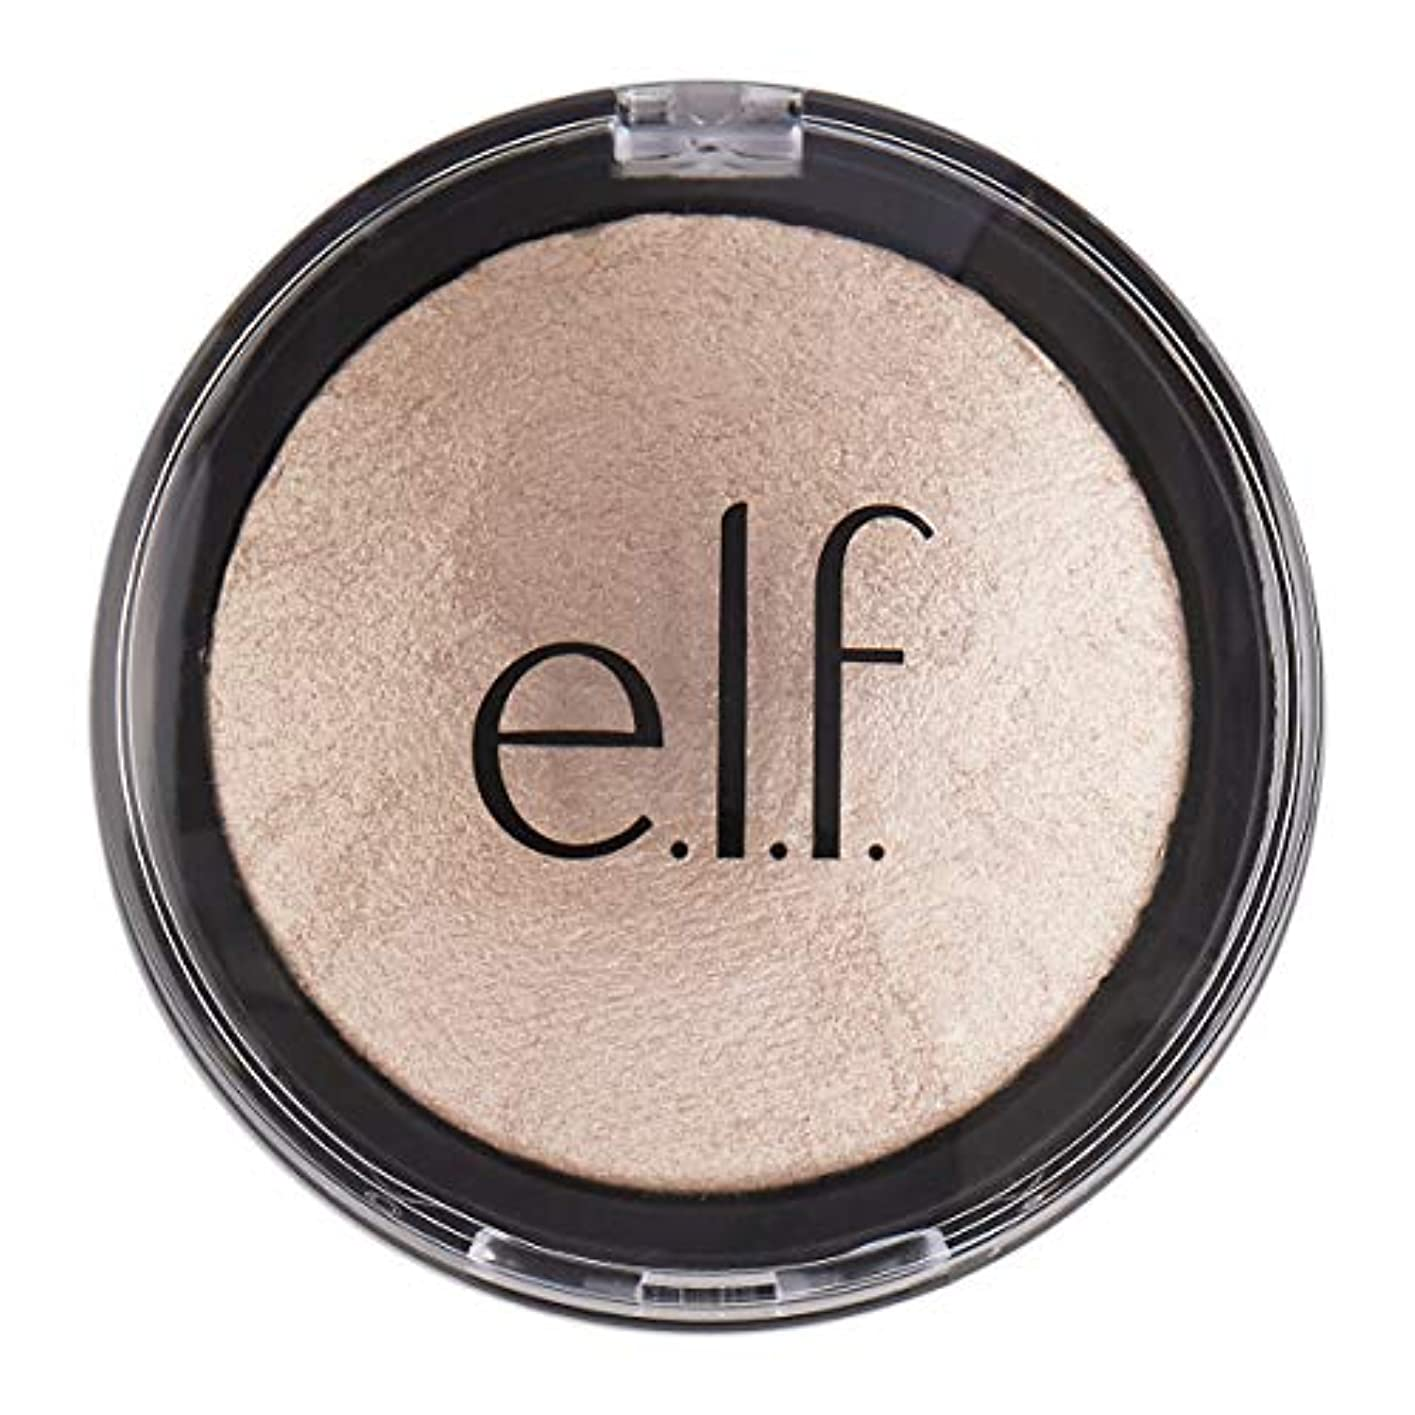 細胞粘液式e.l.f. Studio Baked Highlighter - Moonlight Pearls (並行輸入品)